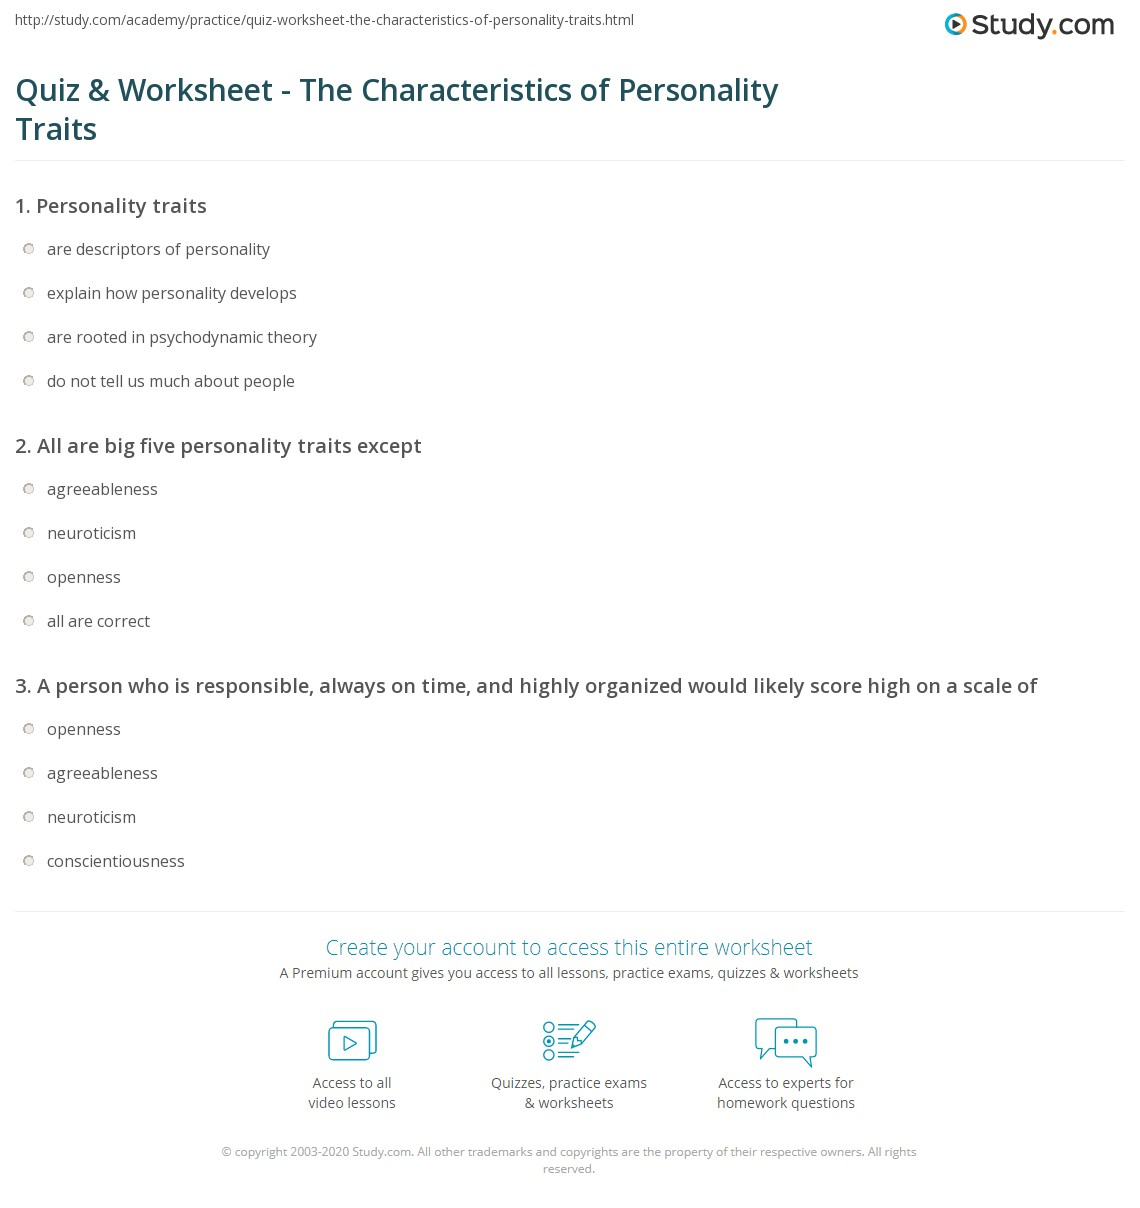 photograph regarding Personality Quiz Printable named Quiz Worksheet - The Features of Individuality Characteristics